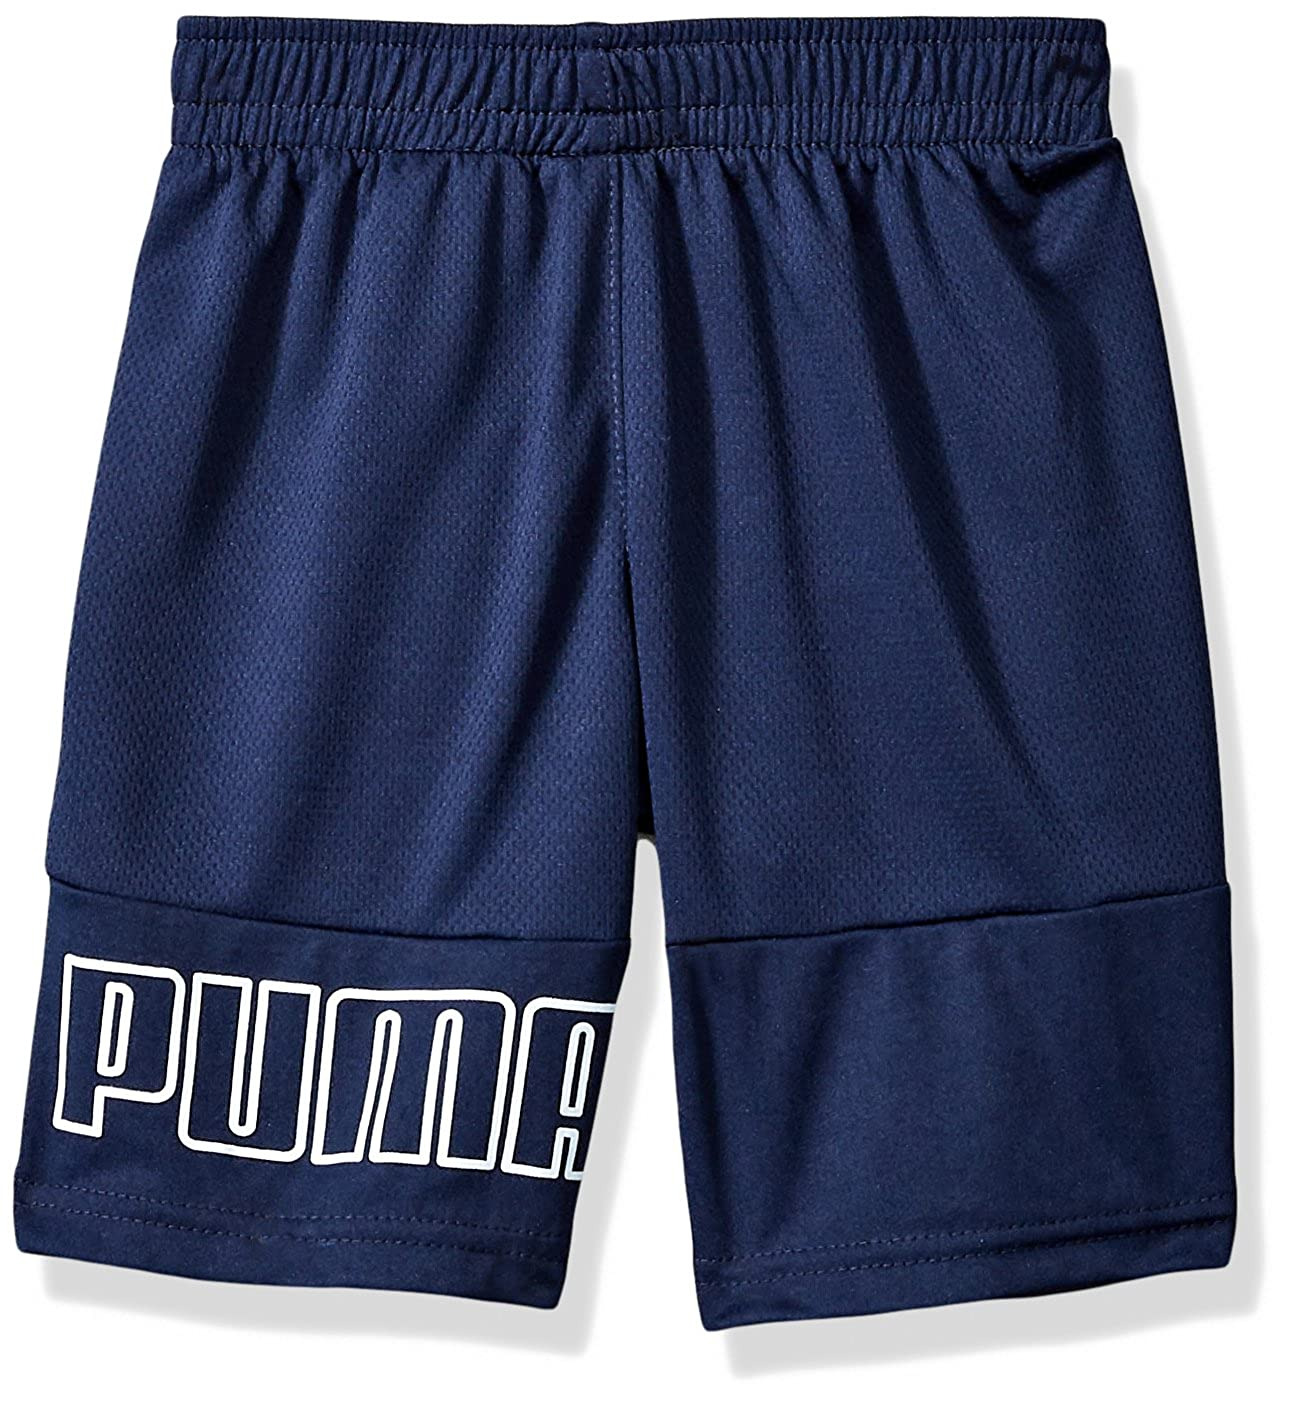 91183288-P496 PUMA Boys Maddox Shorts Peacoat X-Large 18//20